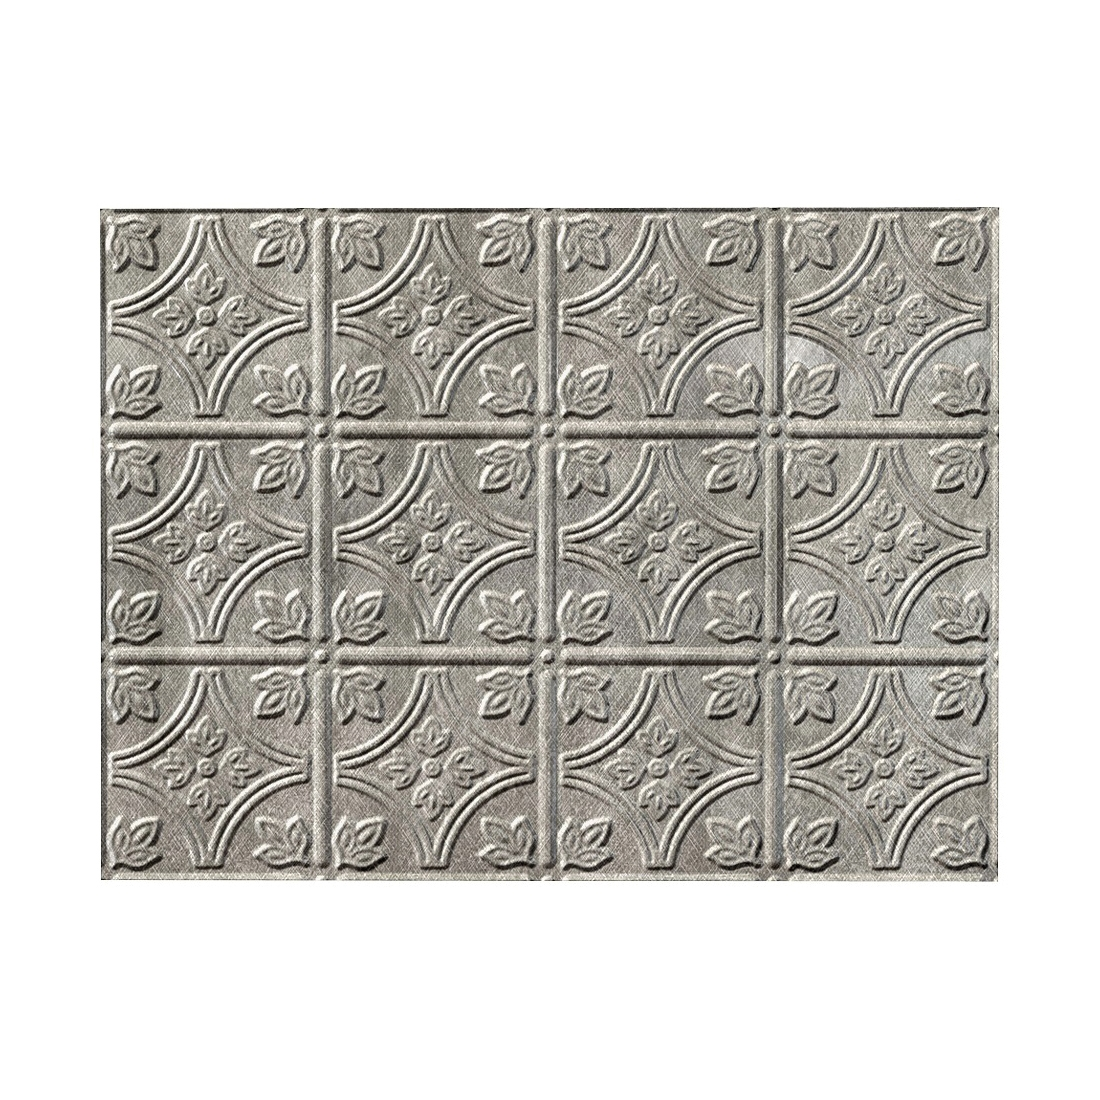 Picture of Fasade D6021 Backsplash Panel, 24 in L, 18 in W, Thermoplastic, Silver